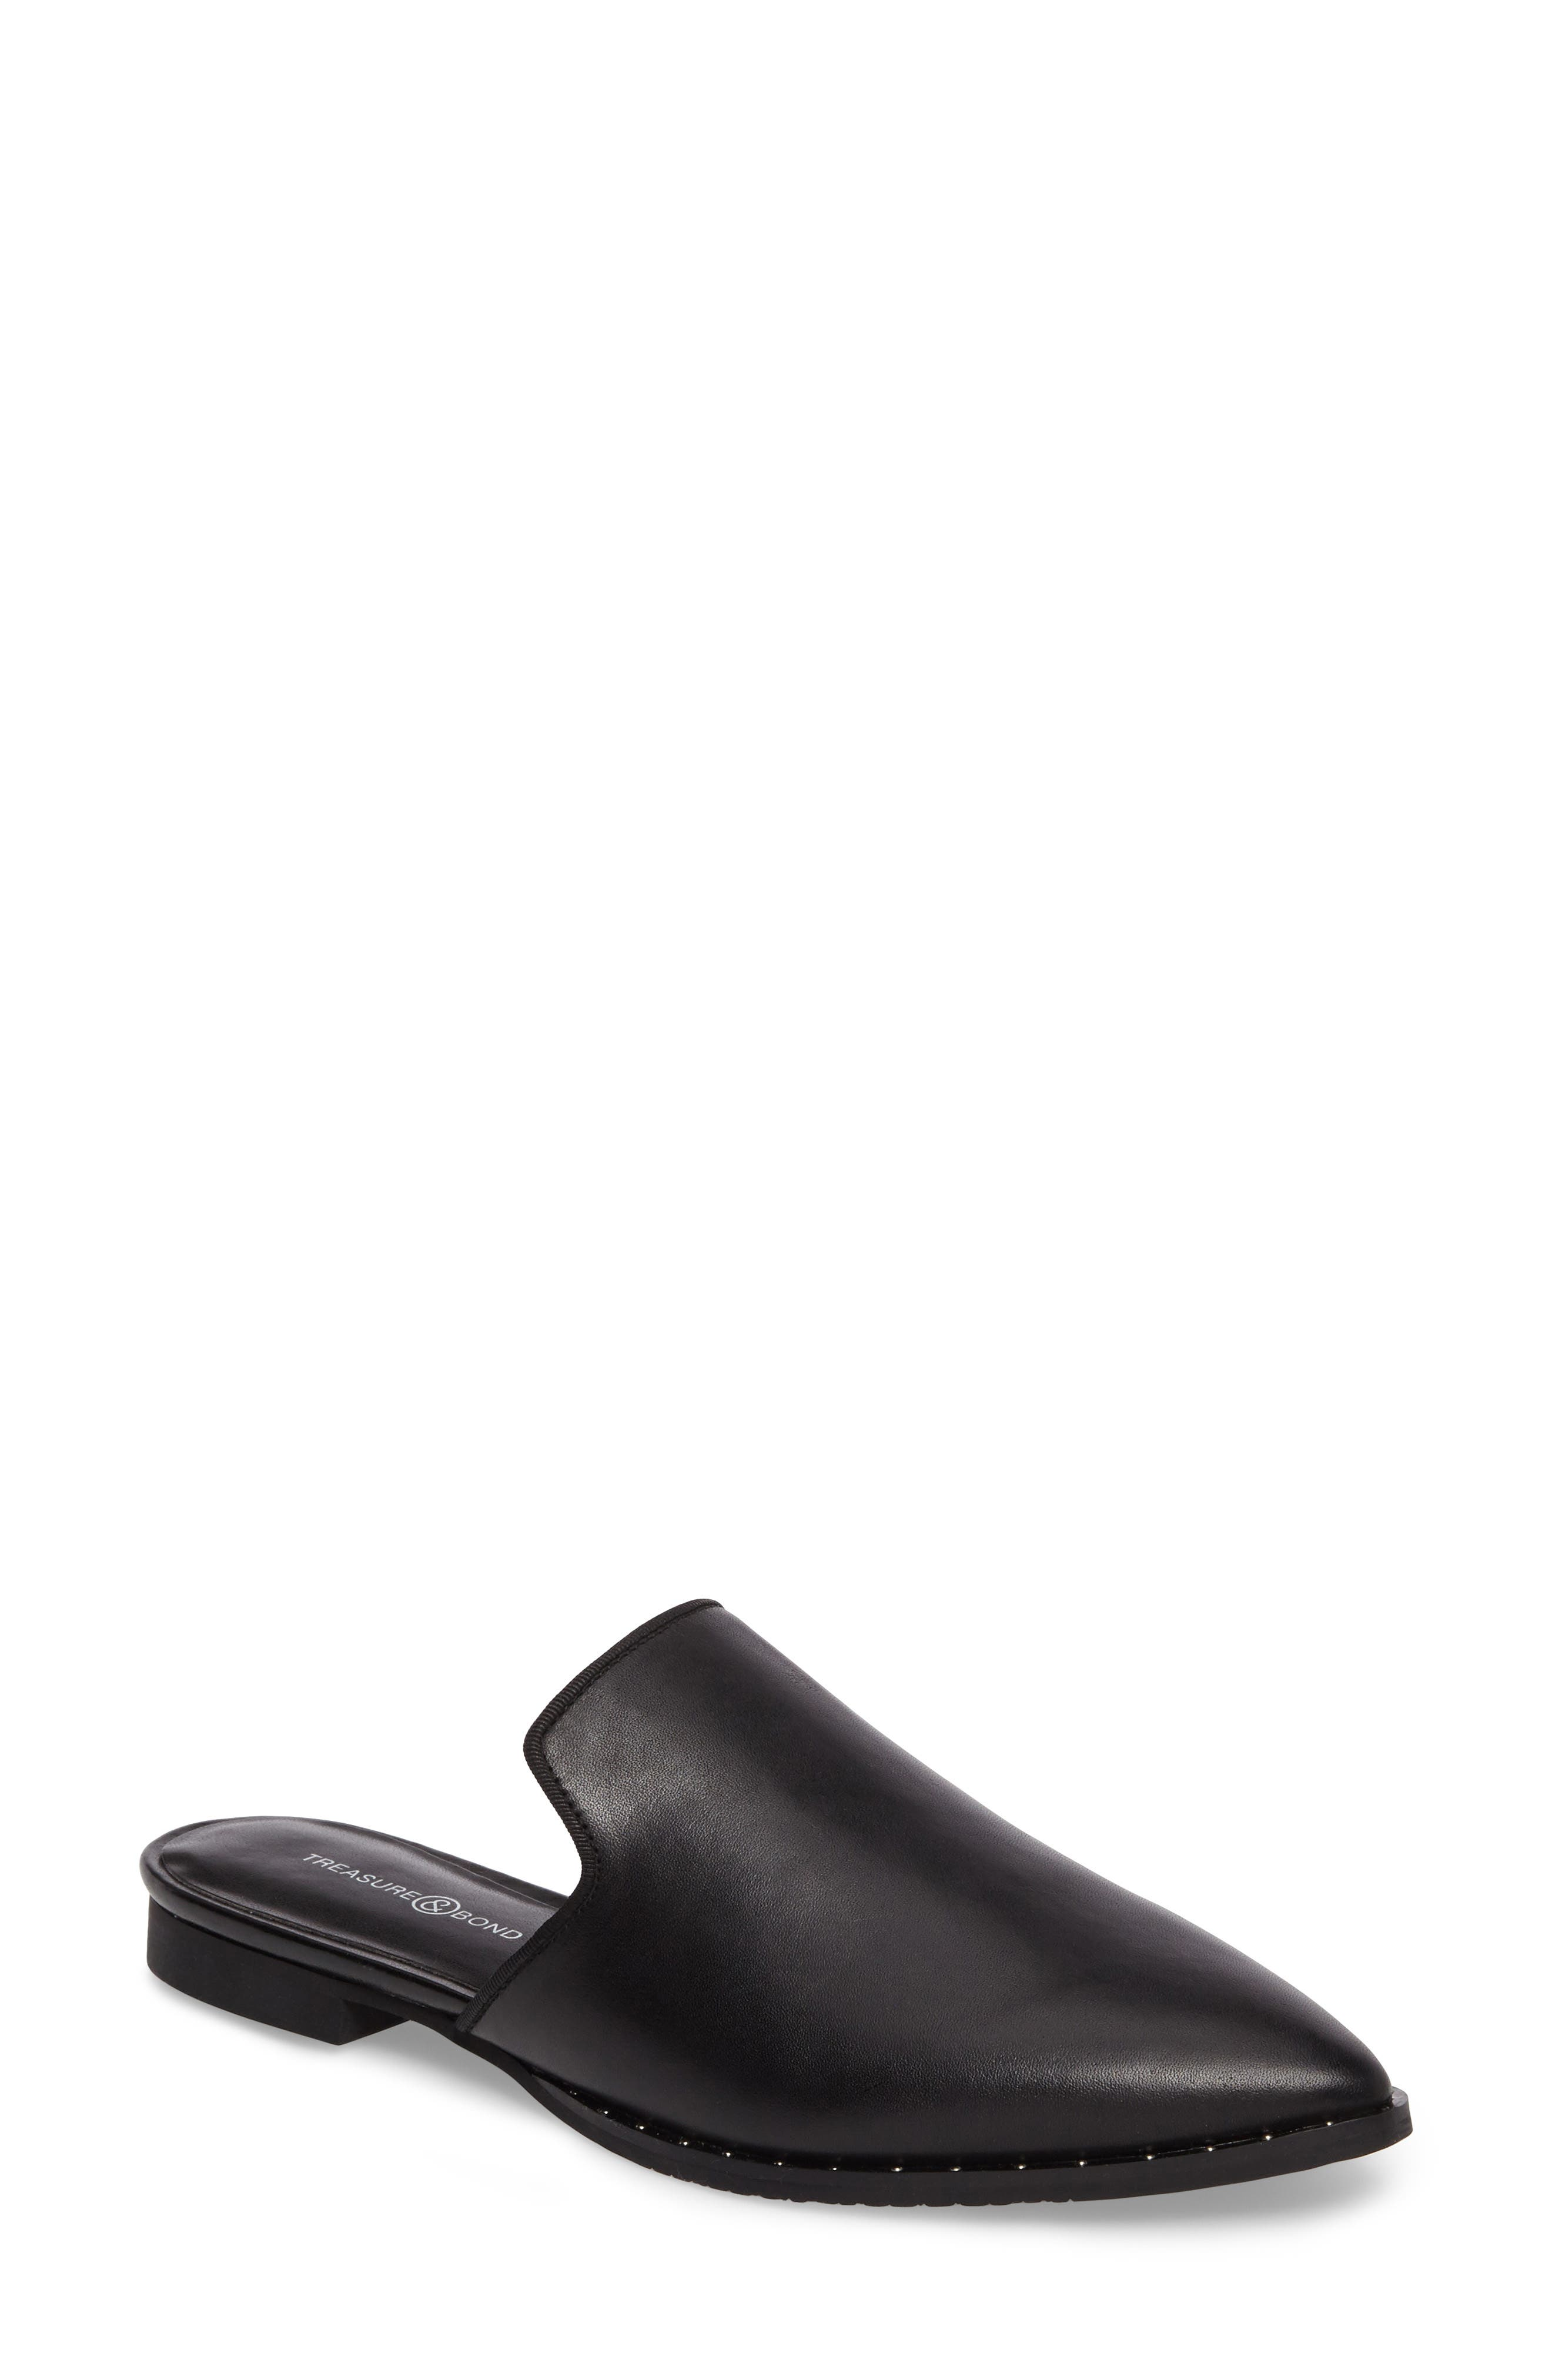 Keaton Loafer Mule,                             Main thumbnail 1, color,                             Black Leather